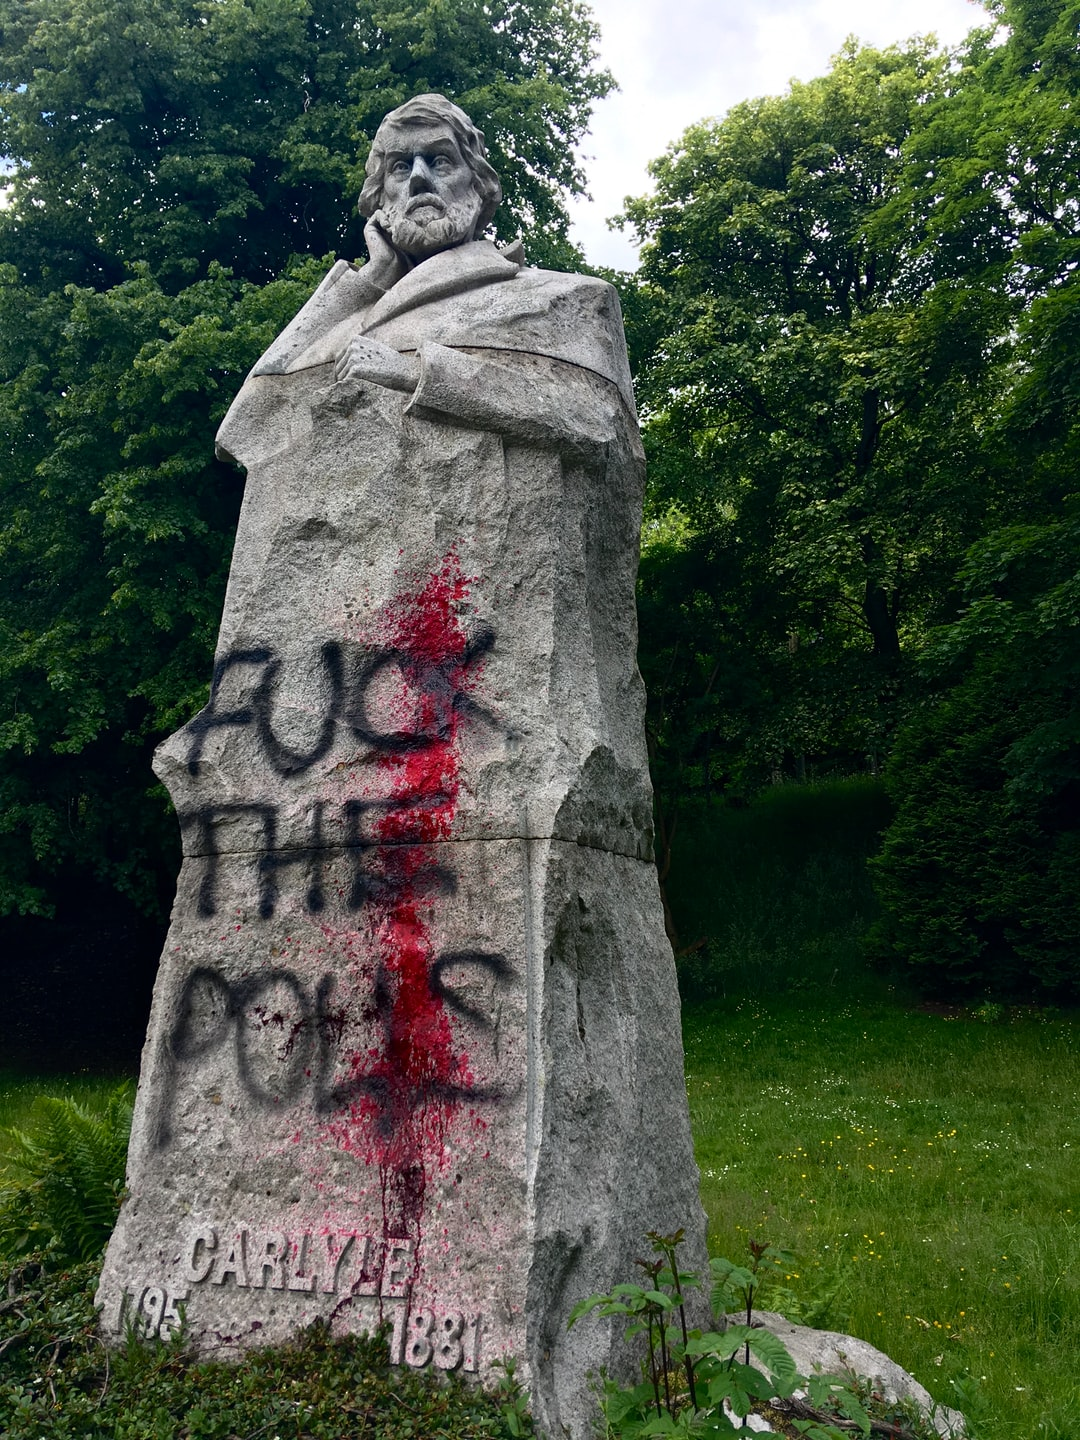 Defaced Thomas Carlyle statue in Glasgow following Black Lives Matter protests on the 7th June 2020